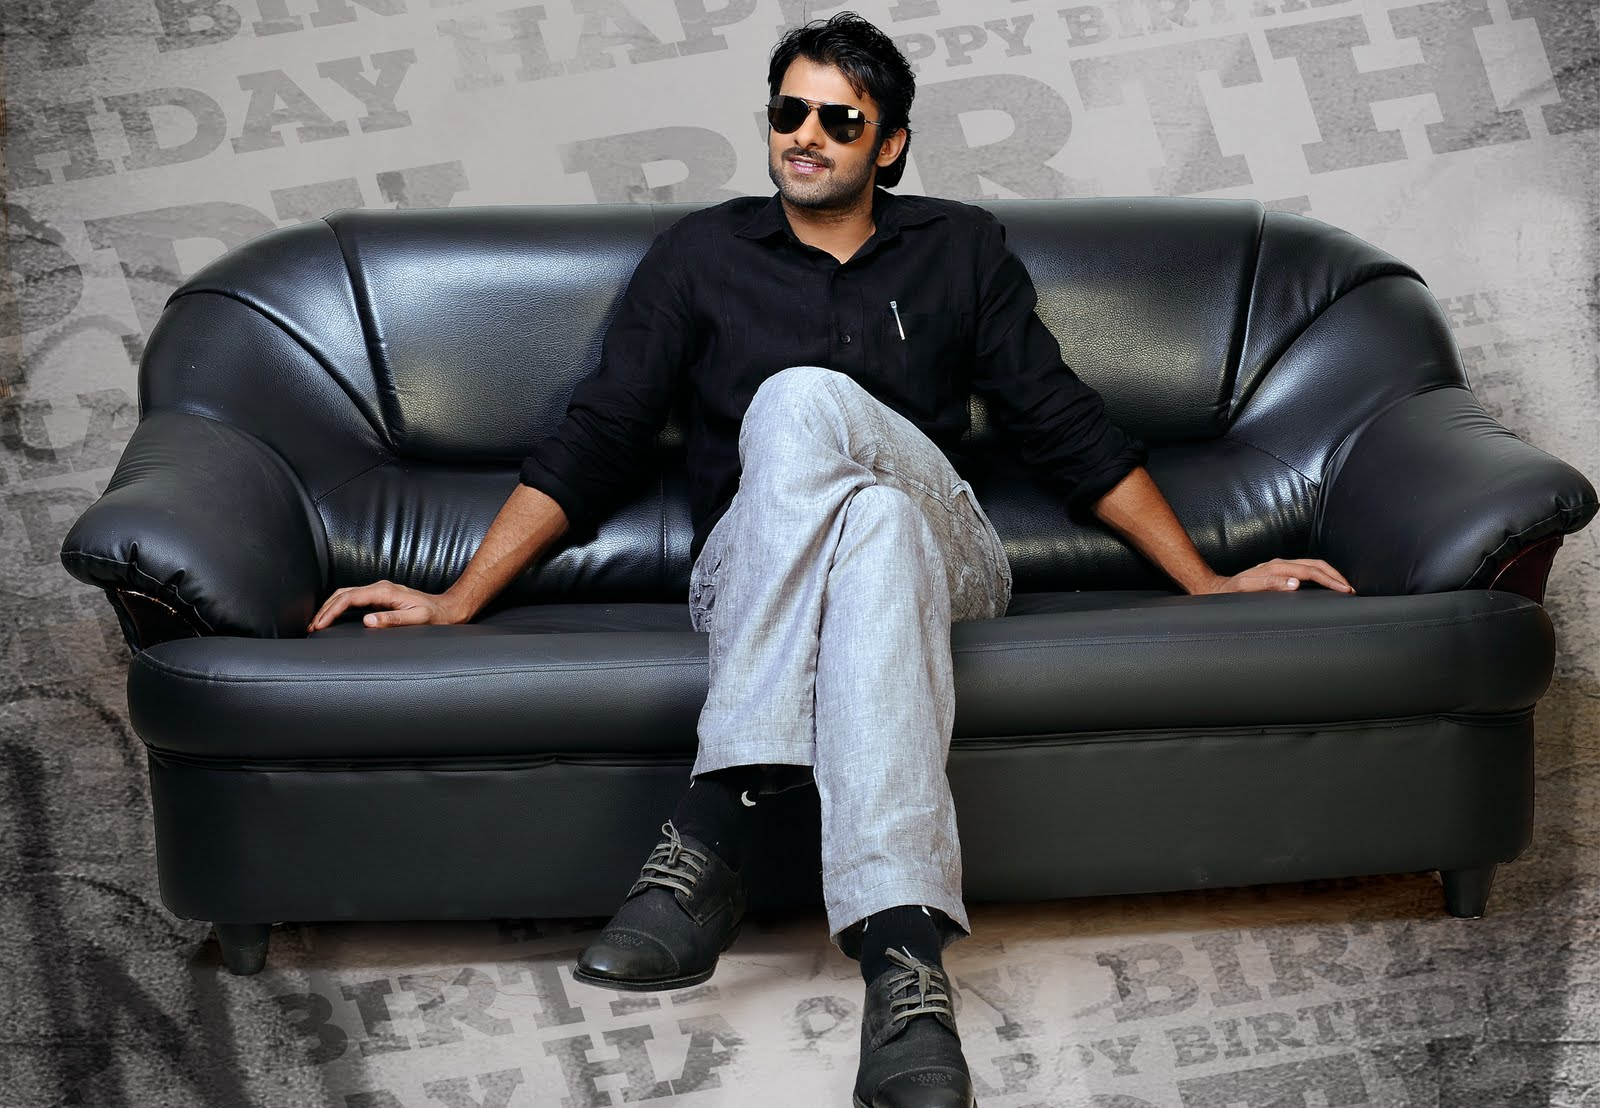 Prabhas Rebel New Stills Wallpapers Ultra Hd 2000: Latest Film News: Prabhas Rebel HD Wallpapers